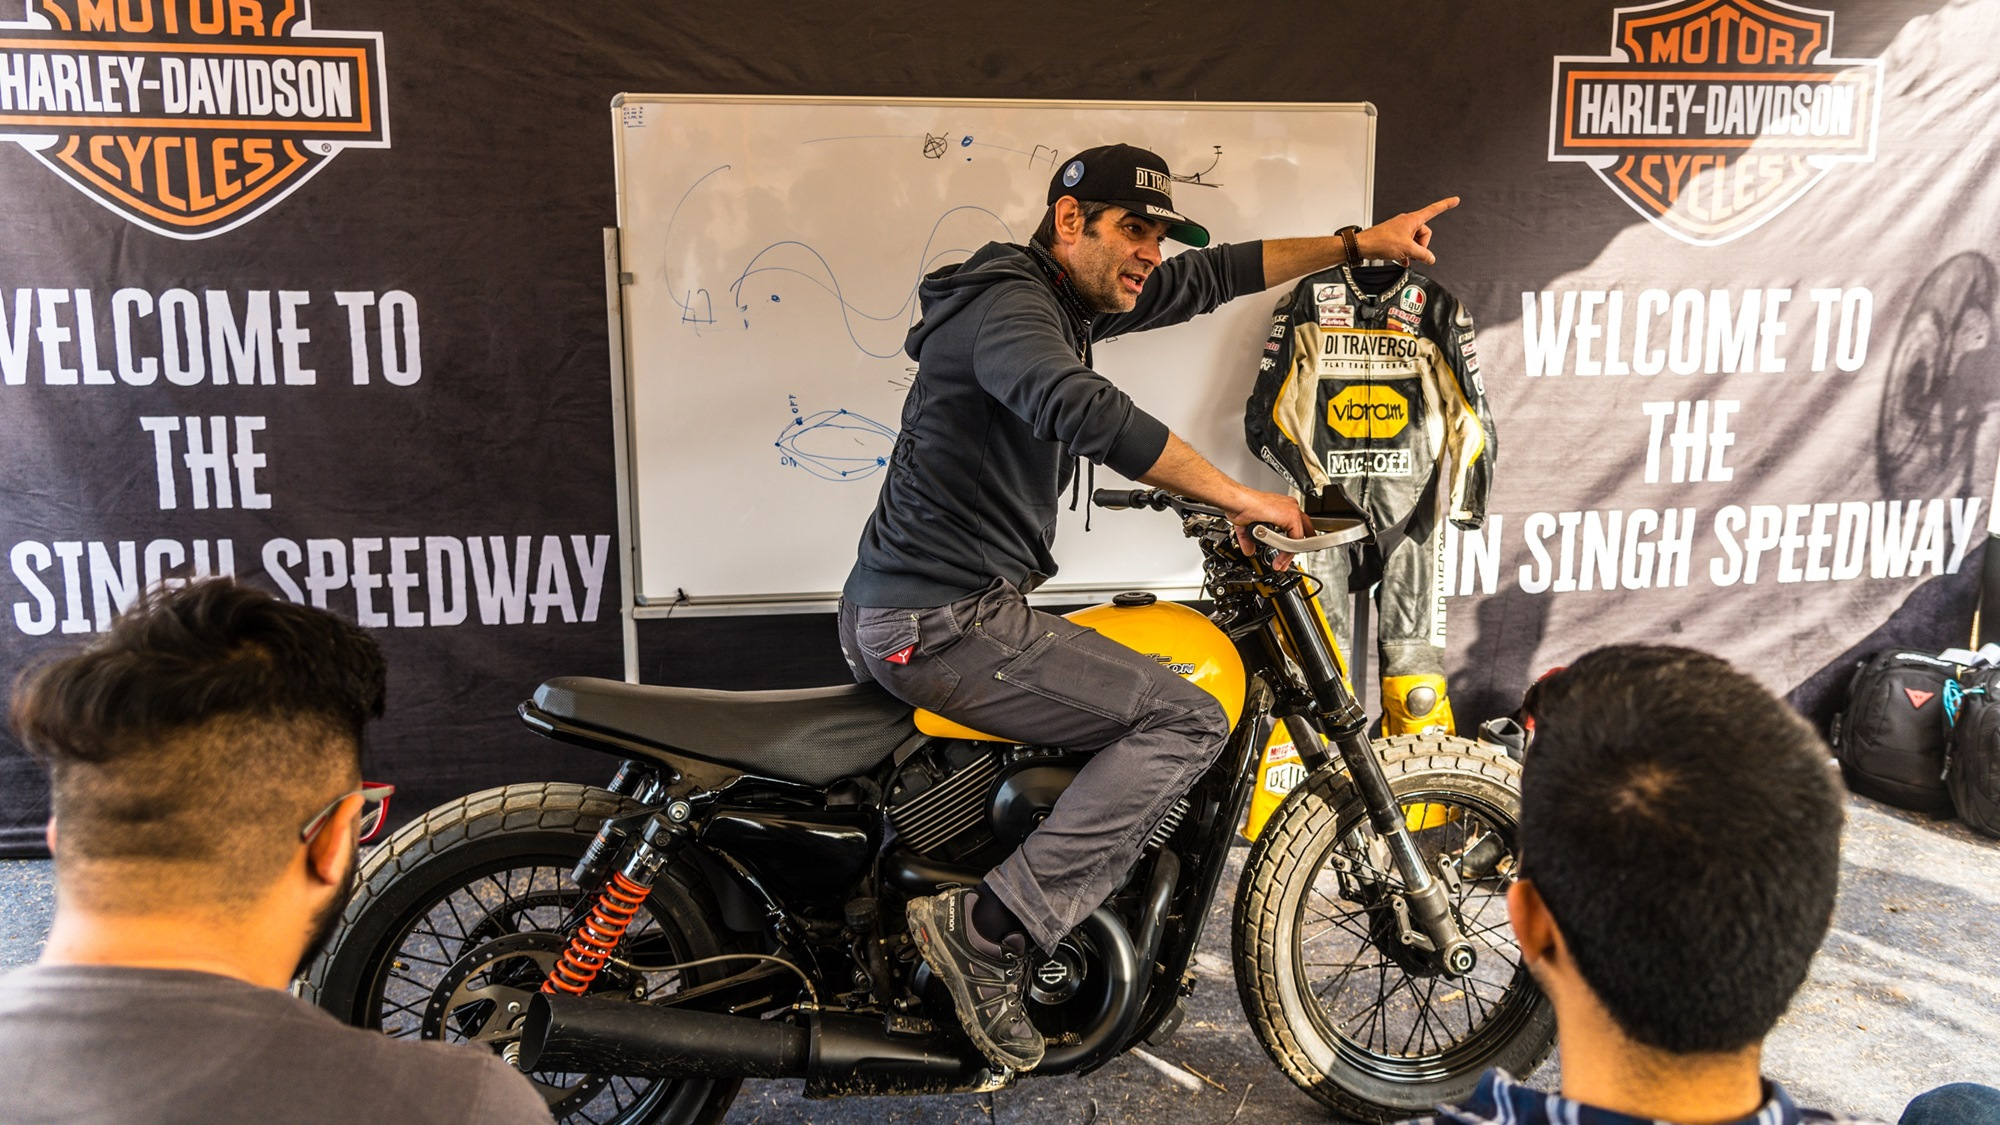 Harley Davidson Flat Track experience in India with Marco Belli ...